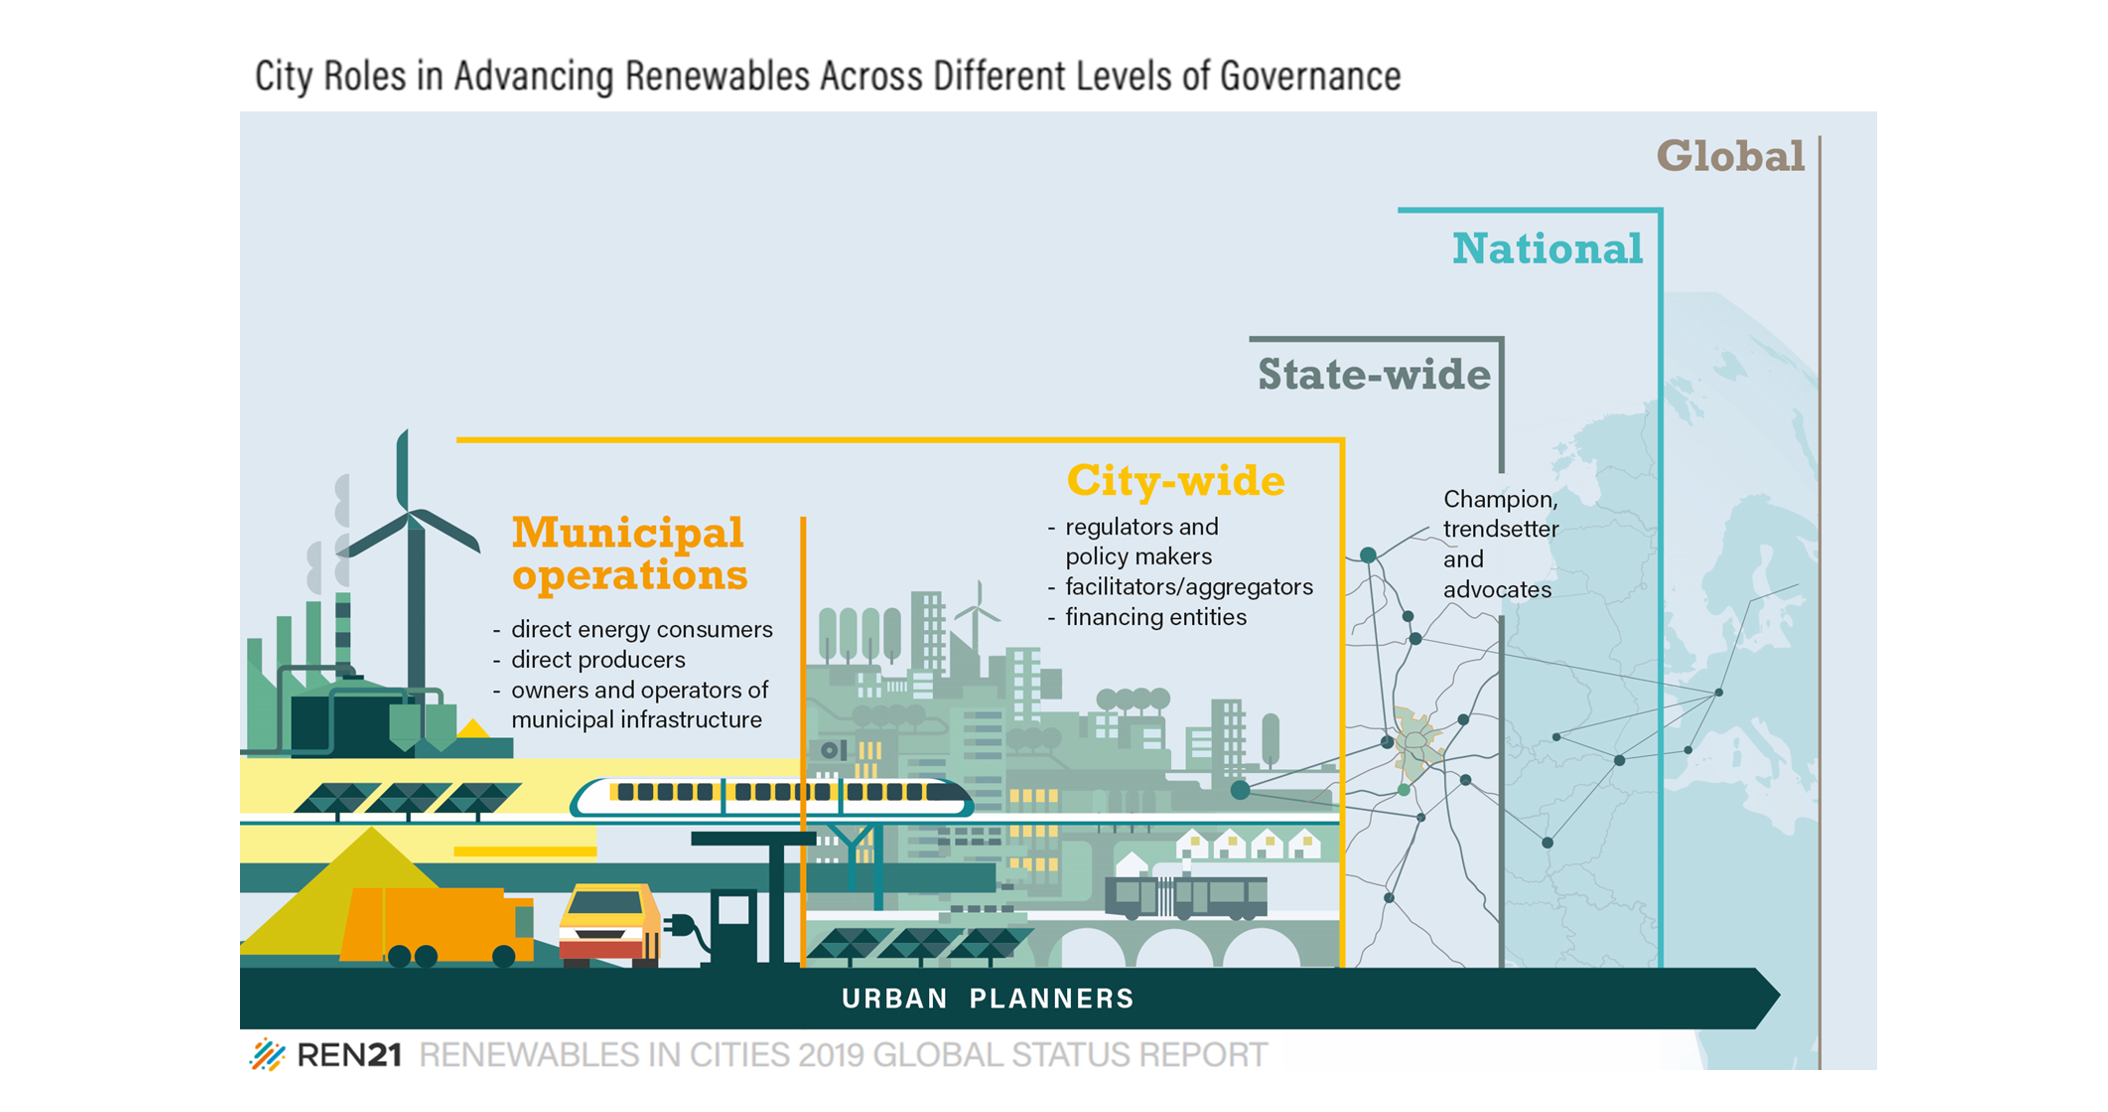 Cities can influence energy policy